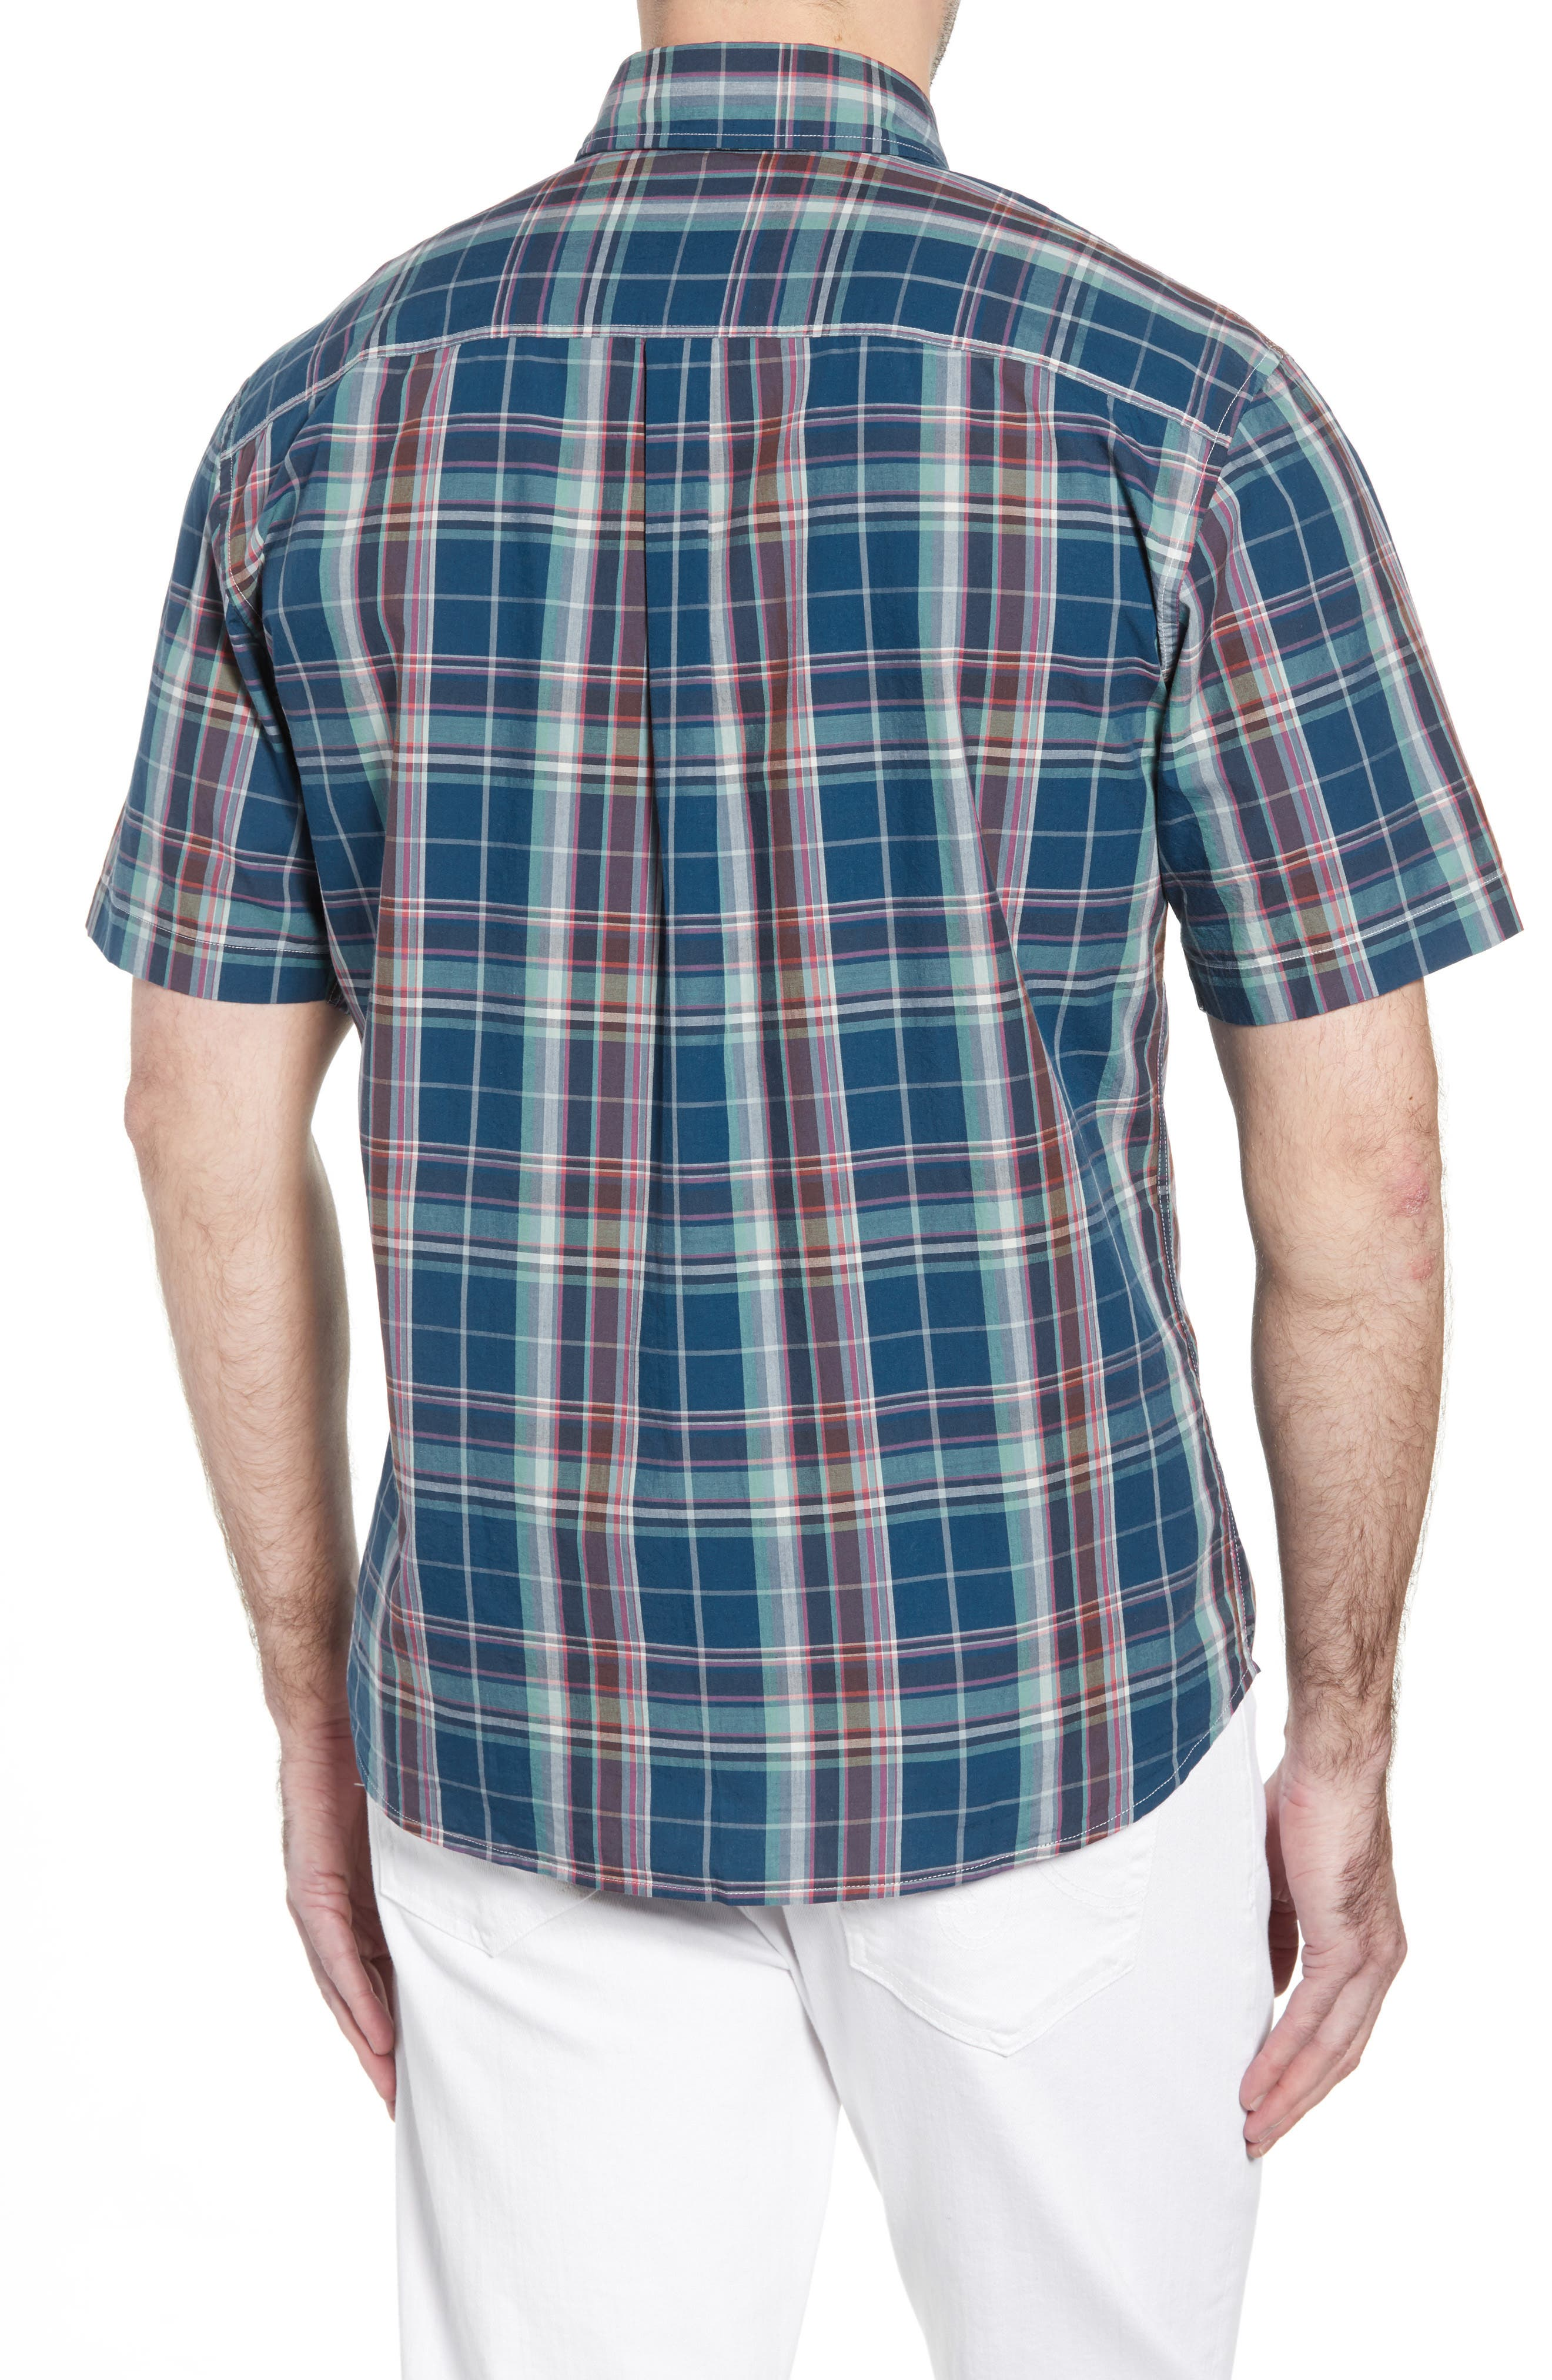 Exum Classic Fit Plaid Sport Shirt,                             Alternate thumbnail 3, color,                             LAKE